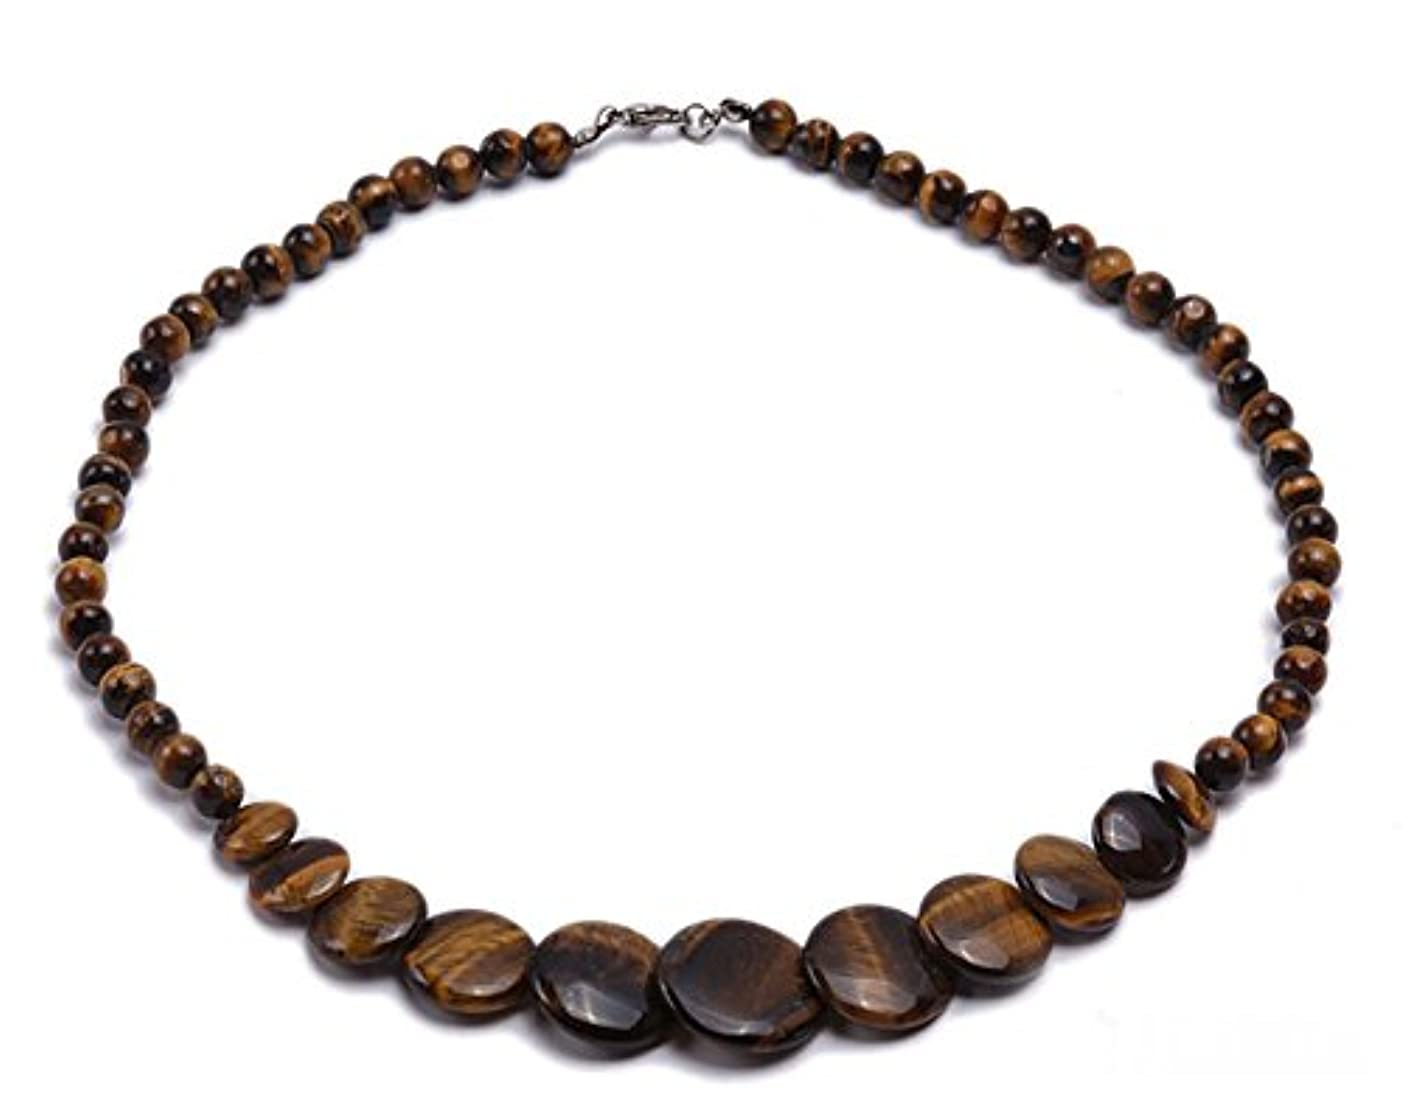 JYX 6mm Tiger Eye Beads and Tiger Eye Pieces Necklace